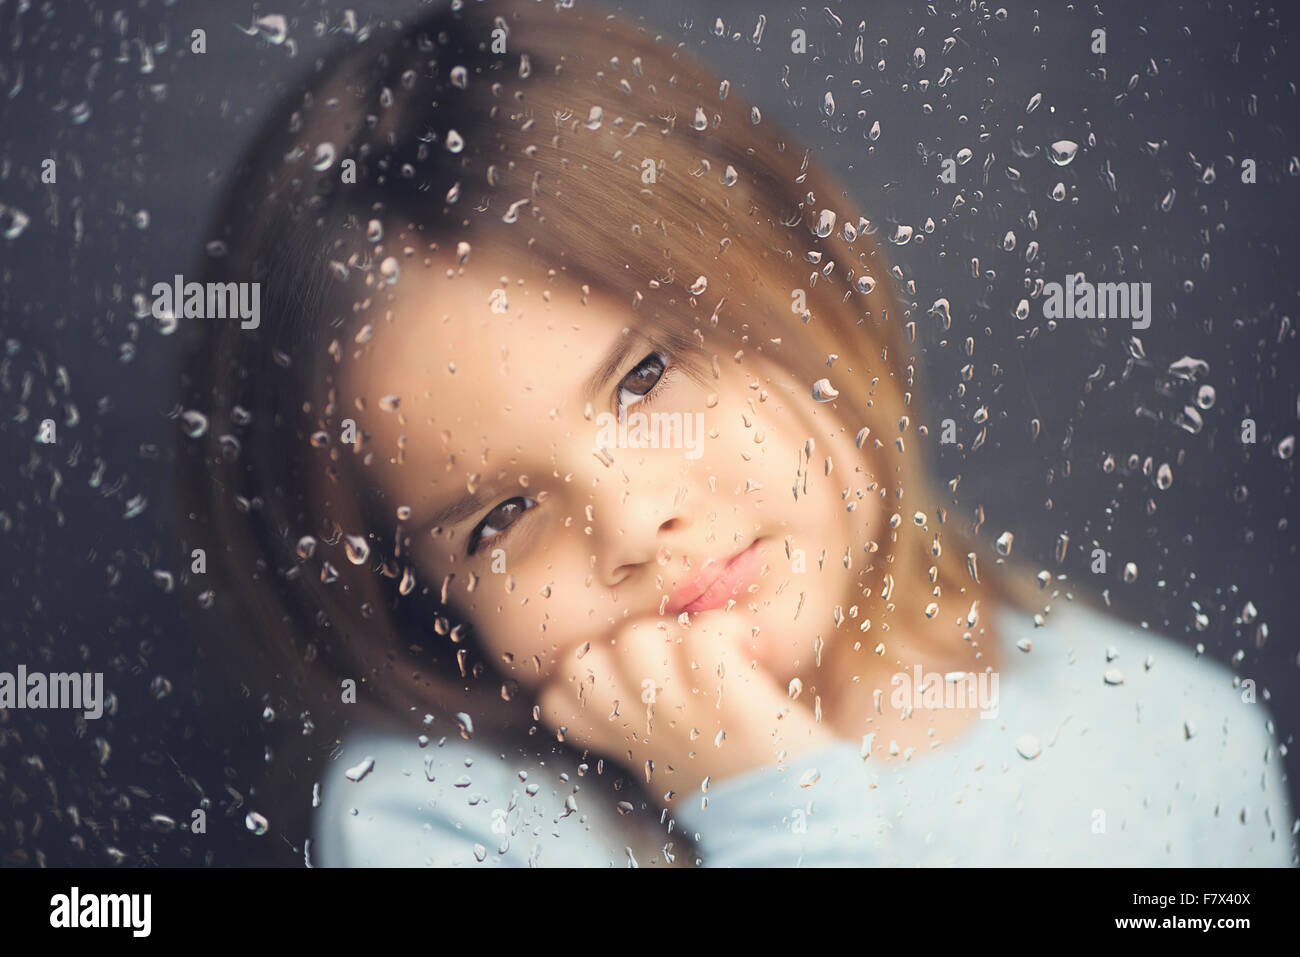 Girl looking out of a window on a rainy day Stock Photo